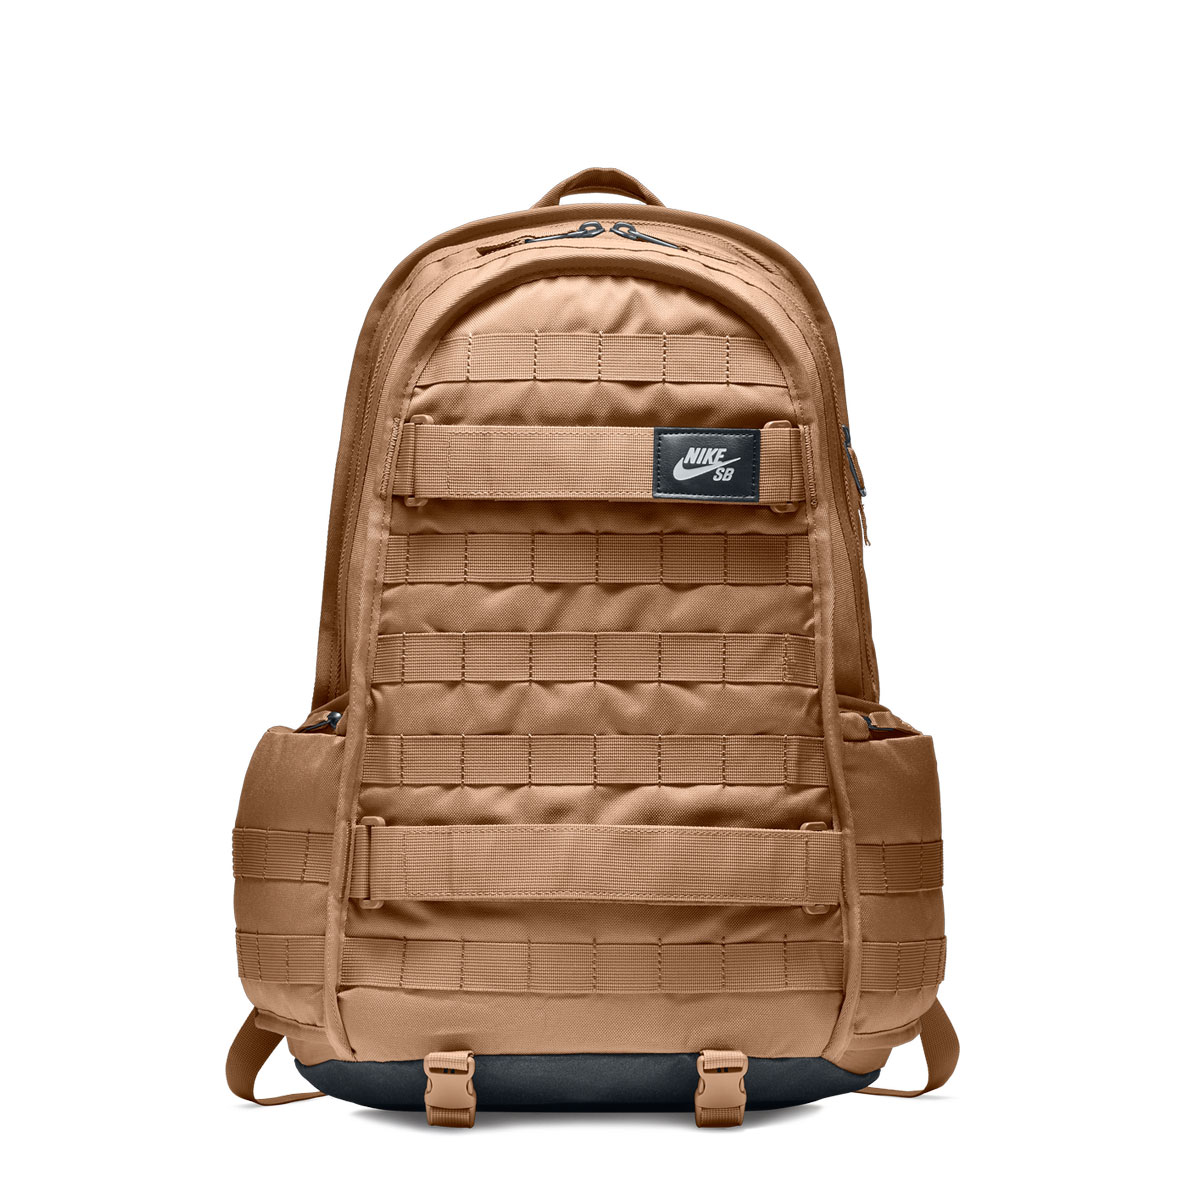 9cf4ce0e2e62 The Nike SB RPM skateboarding backpack which gave waterproofing processing  secures the storage space of all gears. I can store skateboarding and the  laptop